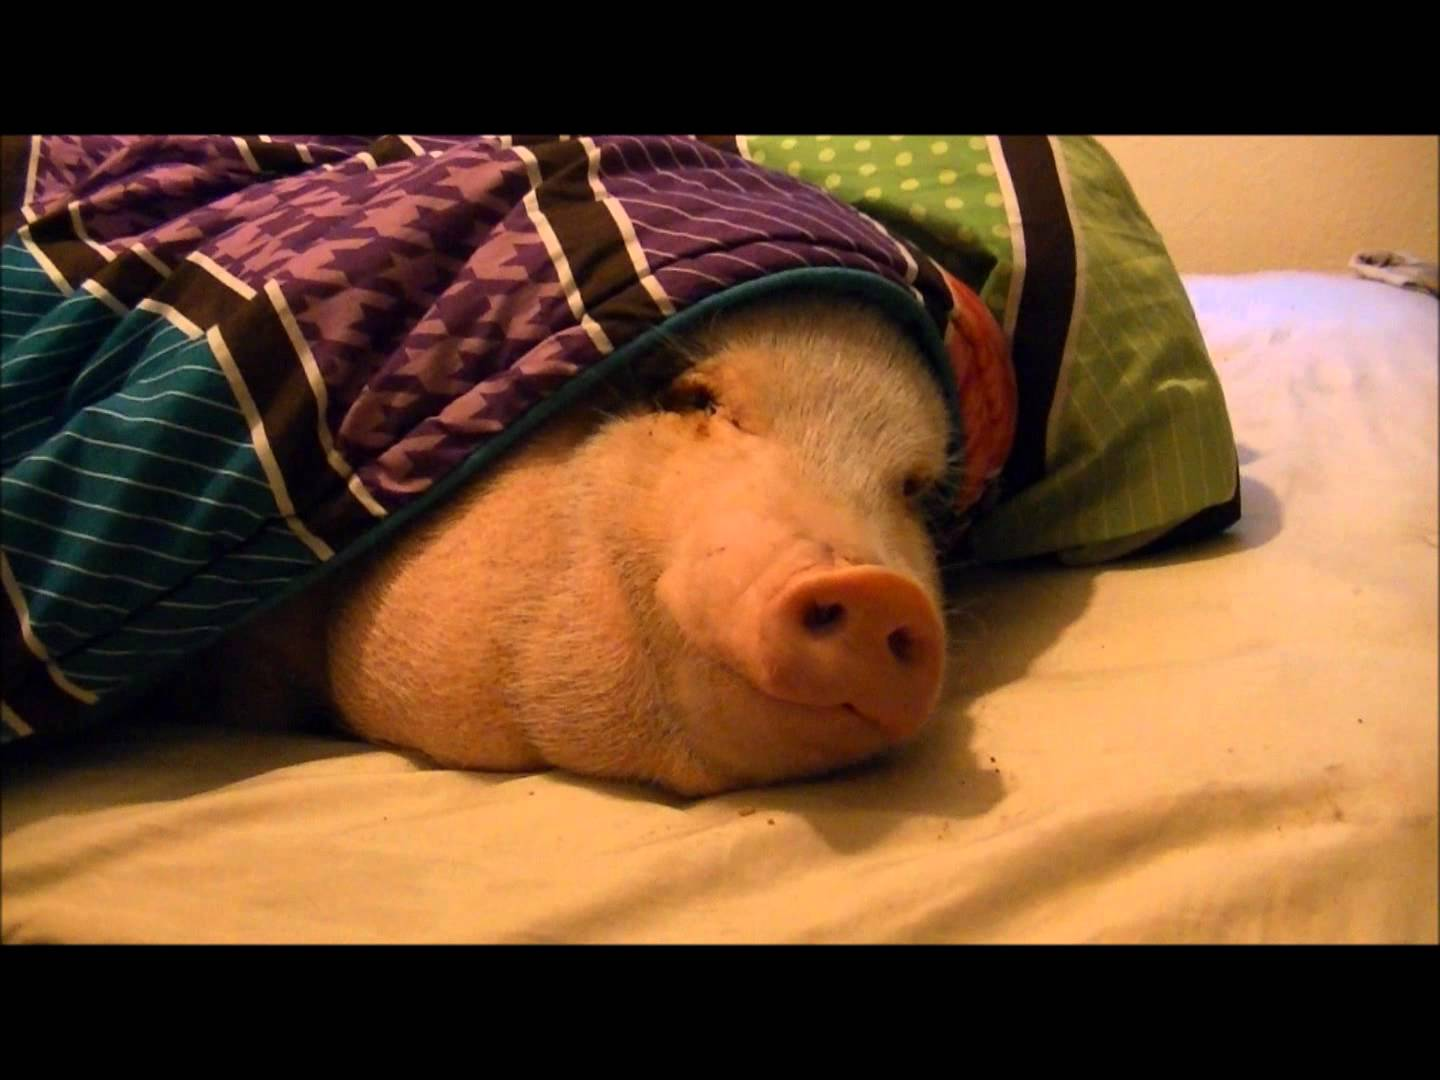 A Sleeping Pig Wakes Up To The Smell Of A Cookie Placed